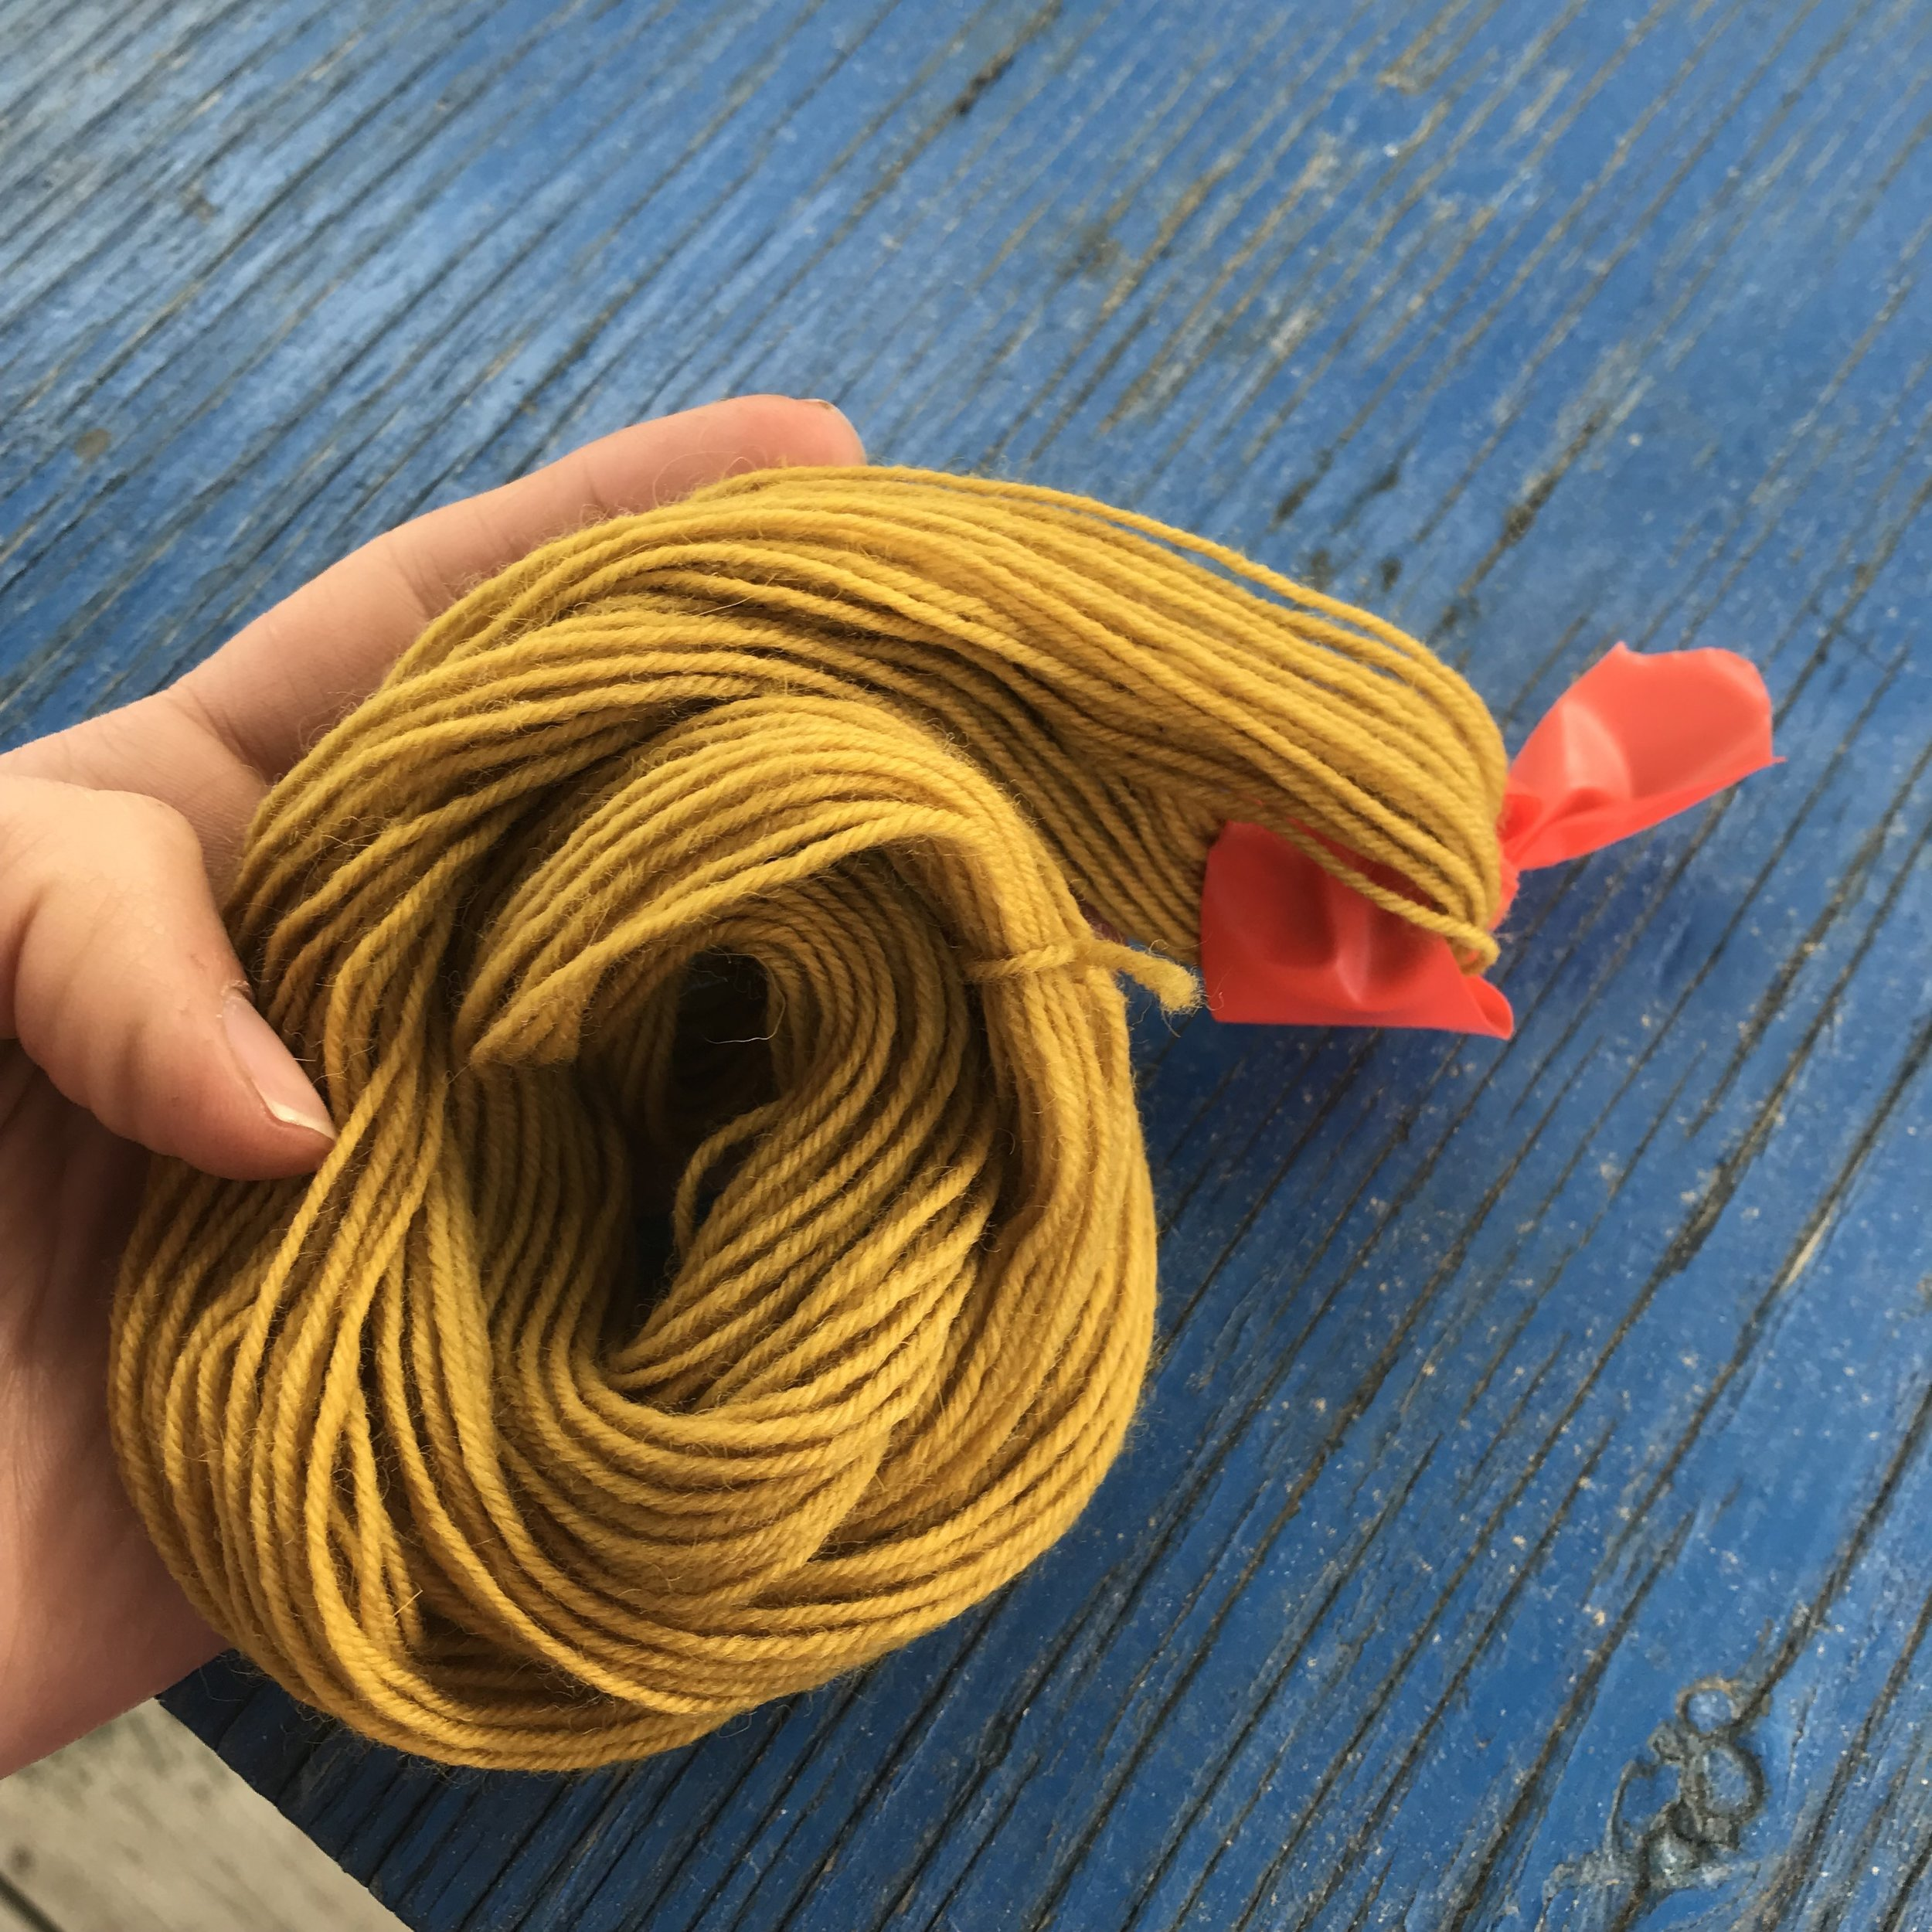 Natural yellow dyed yarn